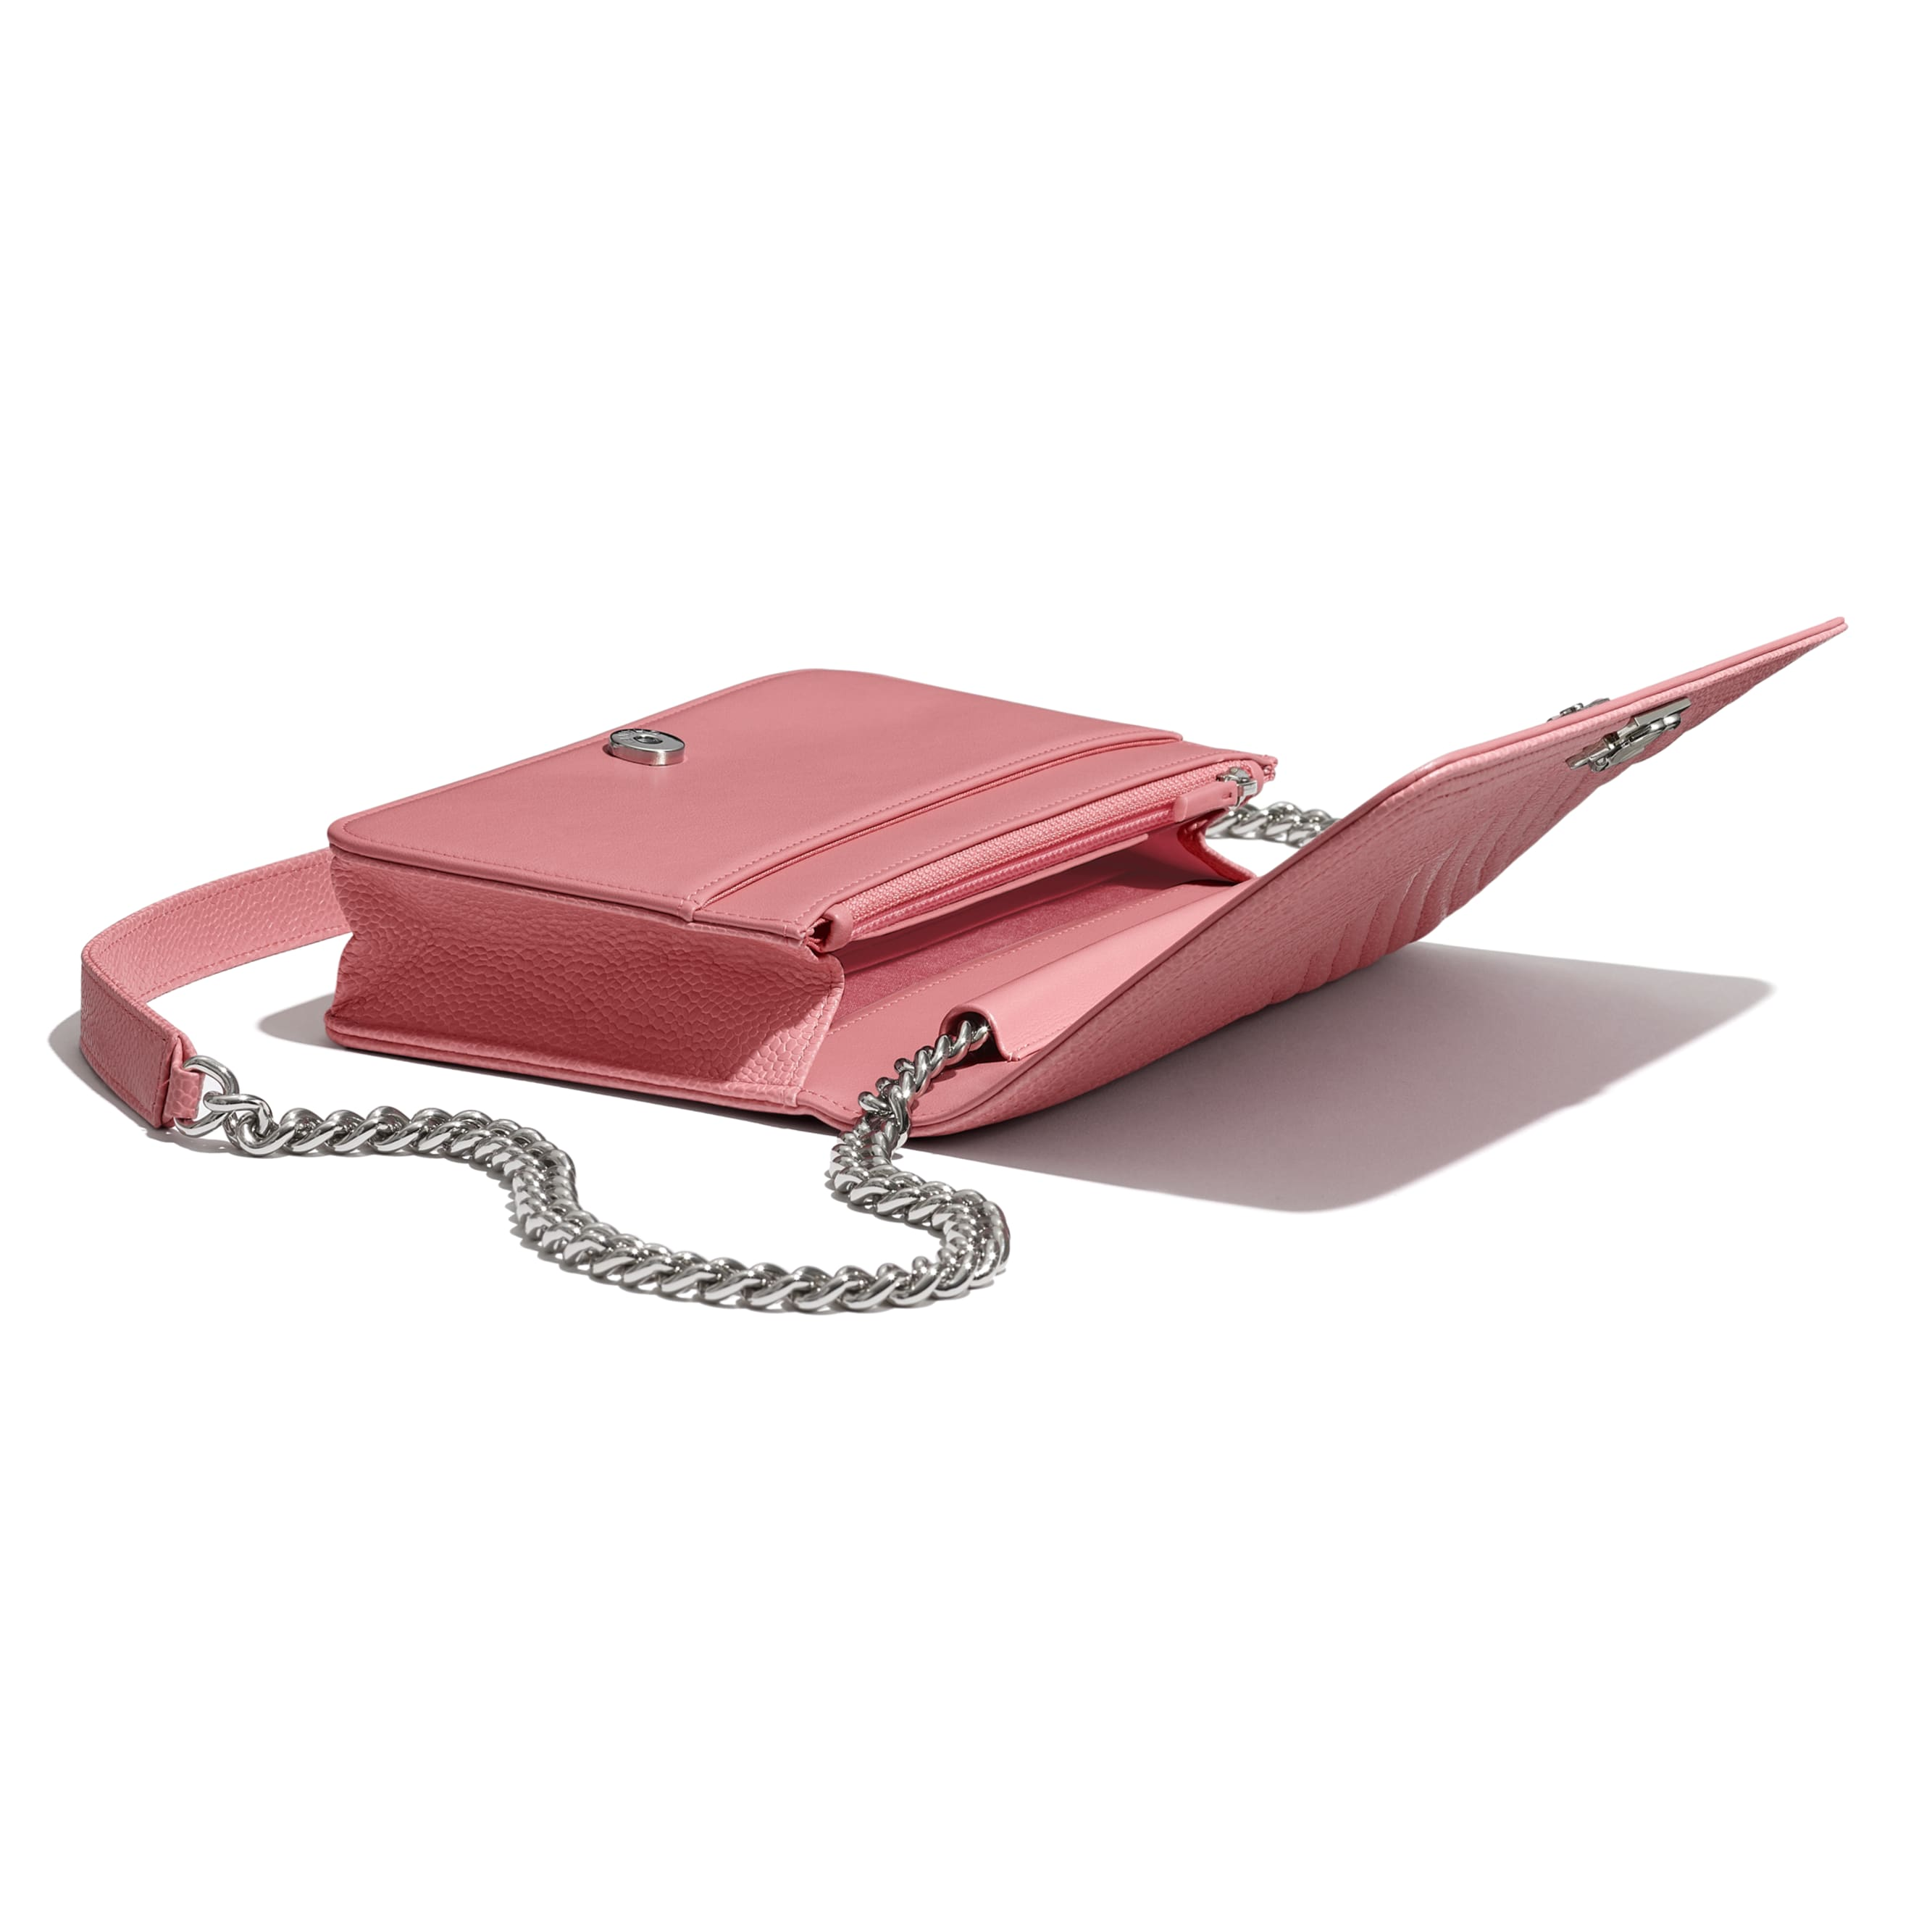 BOY CHANEL Wallet On Chain - Pink - Shiny Grained Calfskin & Silver-Tone Metal - Extra view - see standard sized version